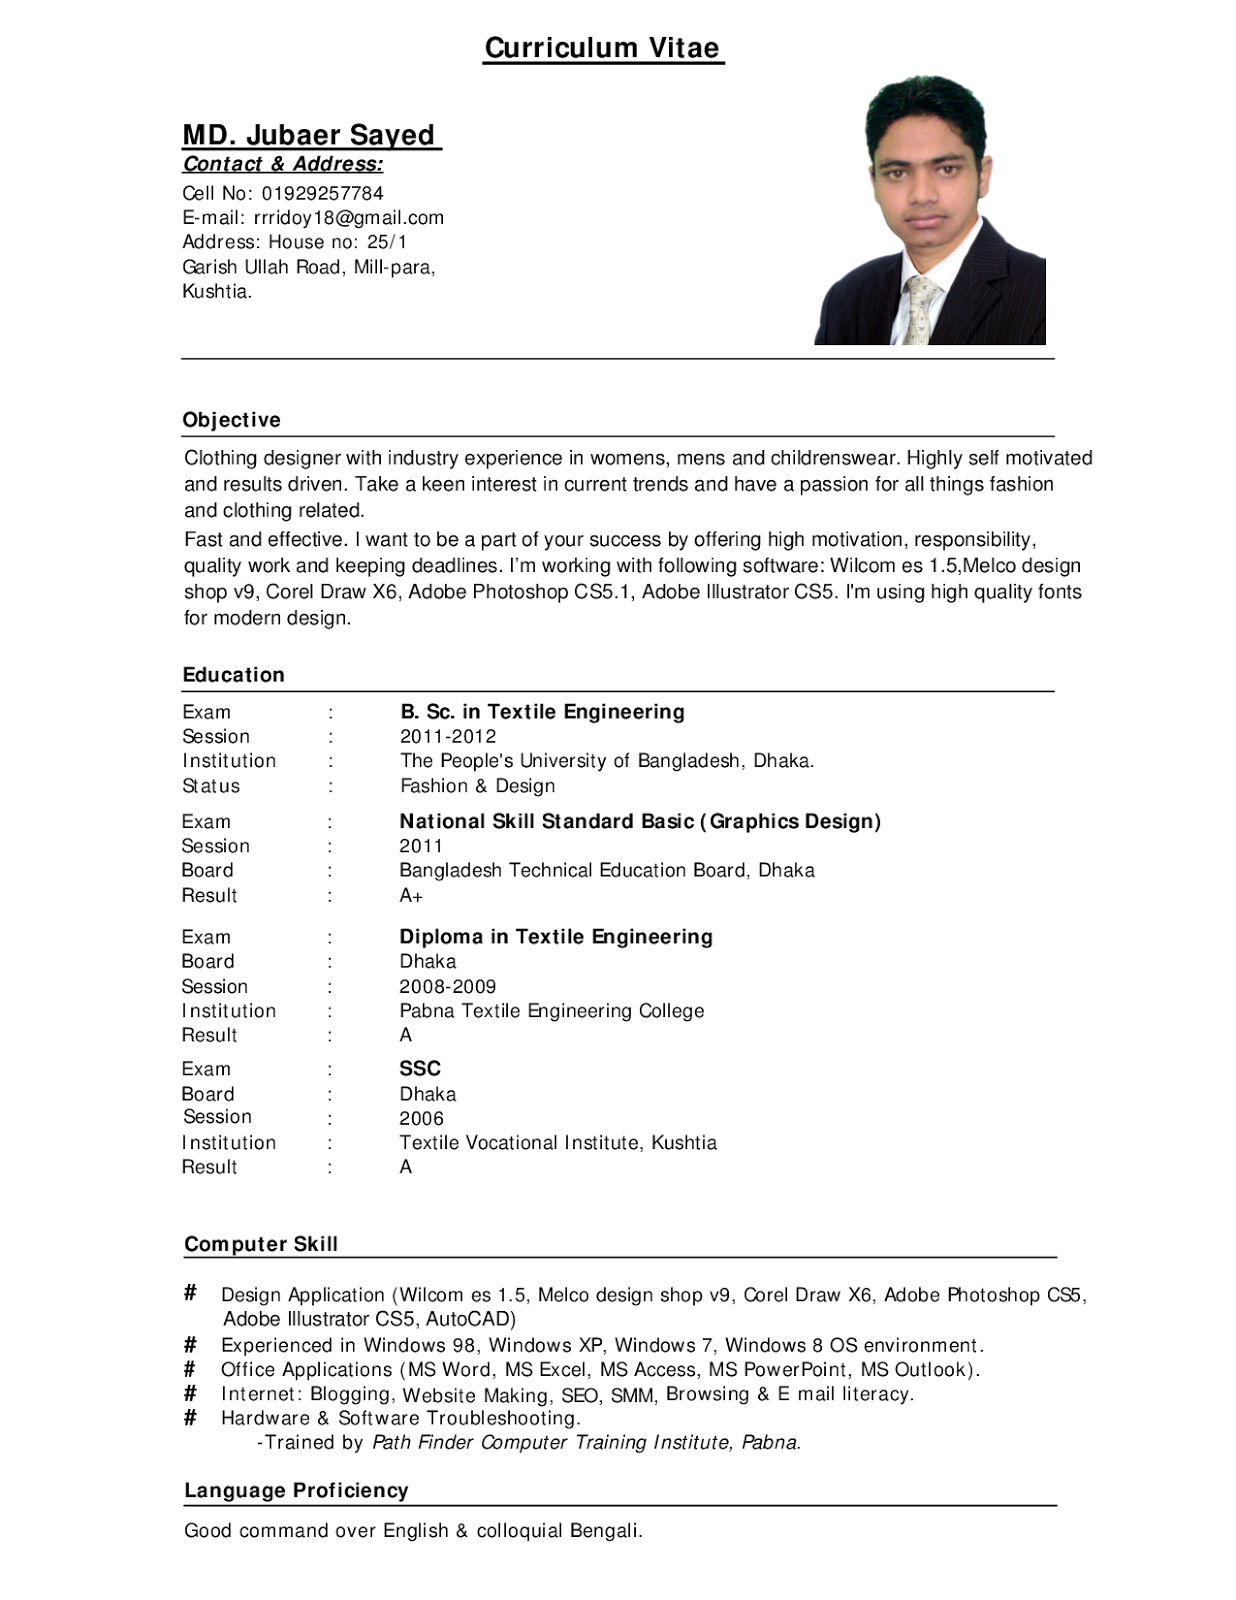 Resume Samples Pdf Sample Resumes Sample Resumes Pinterest